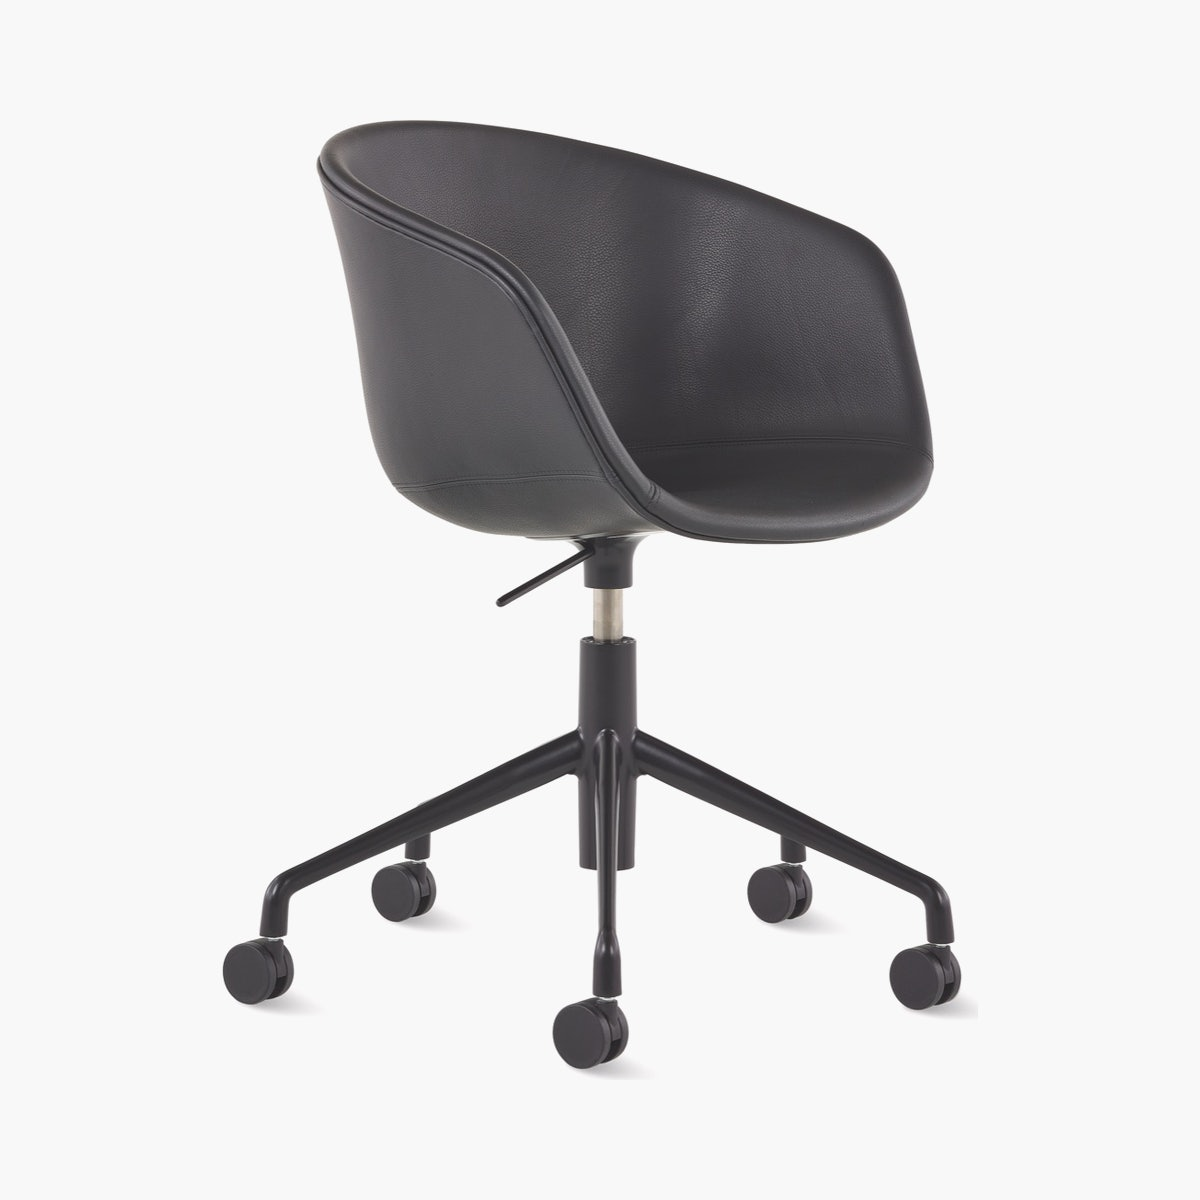 About A Chair 53 Soft Task Armchair